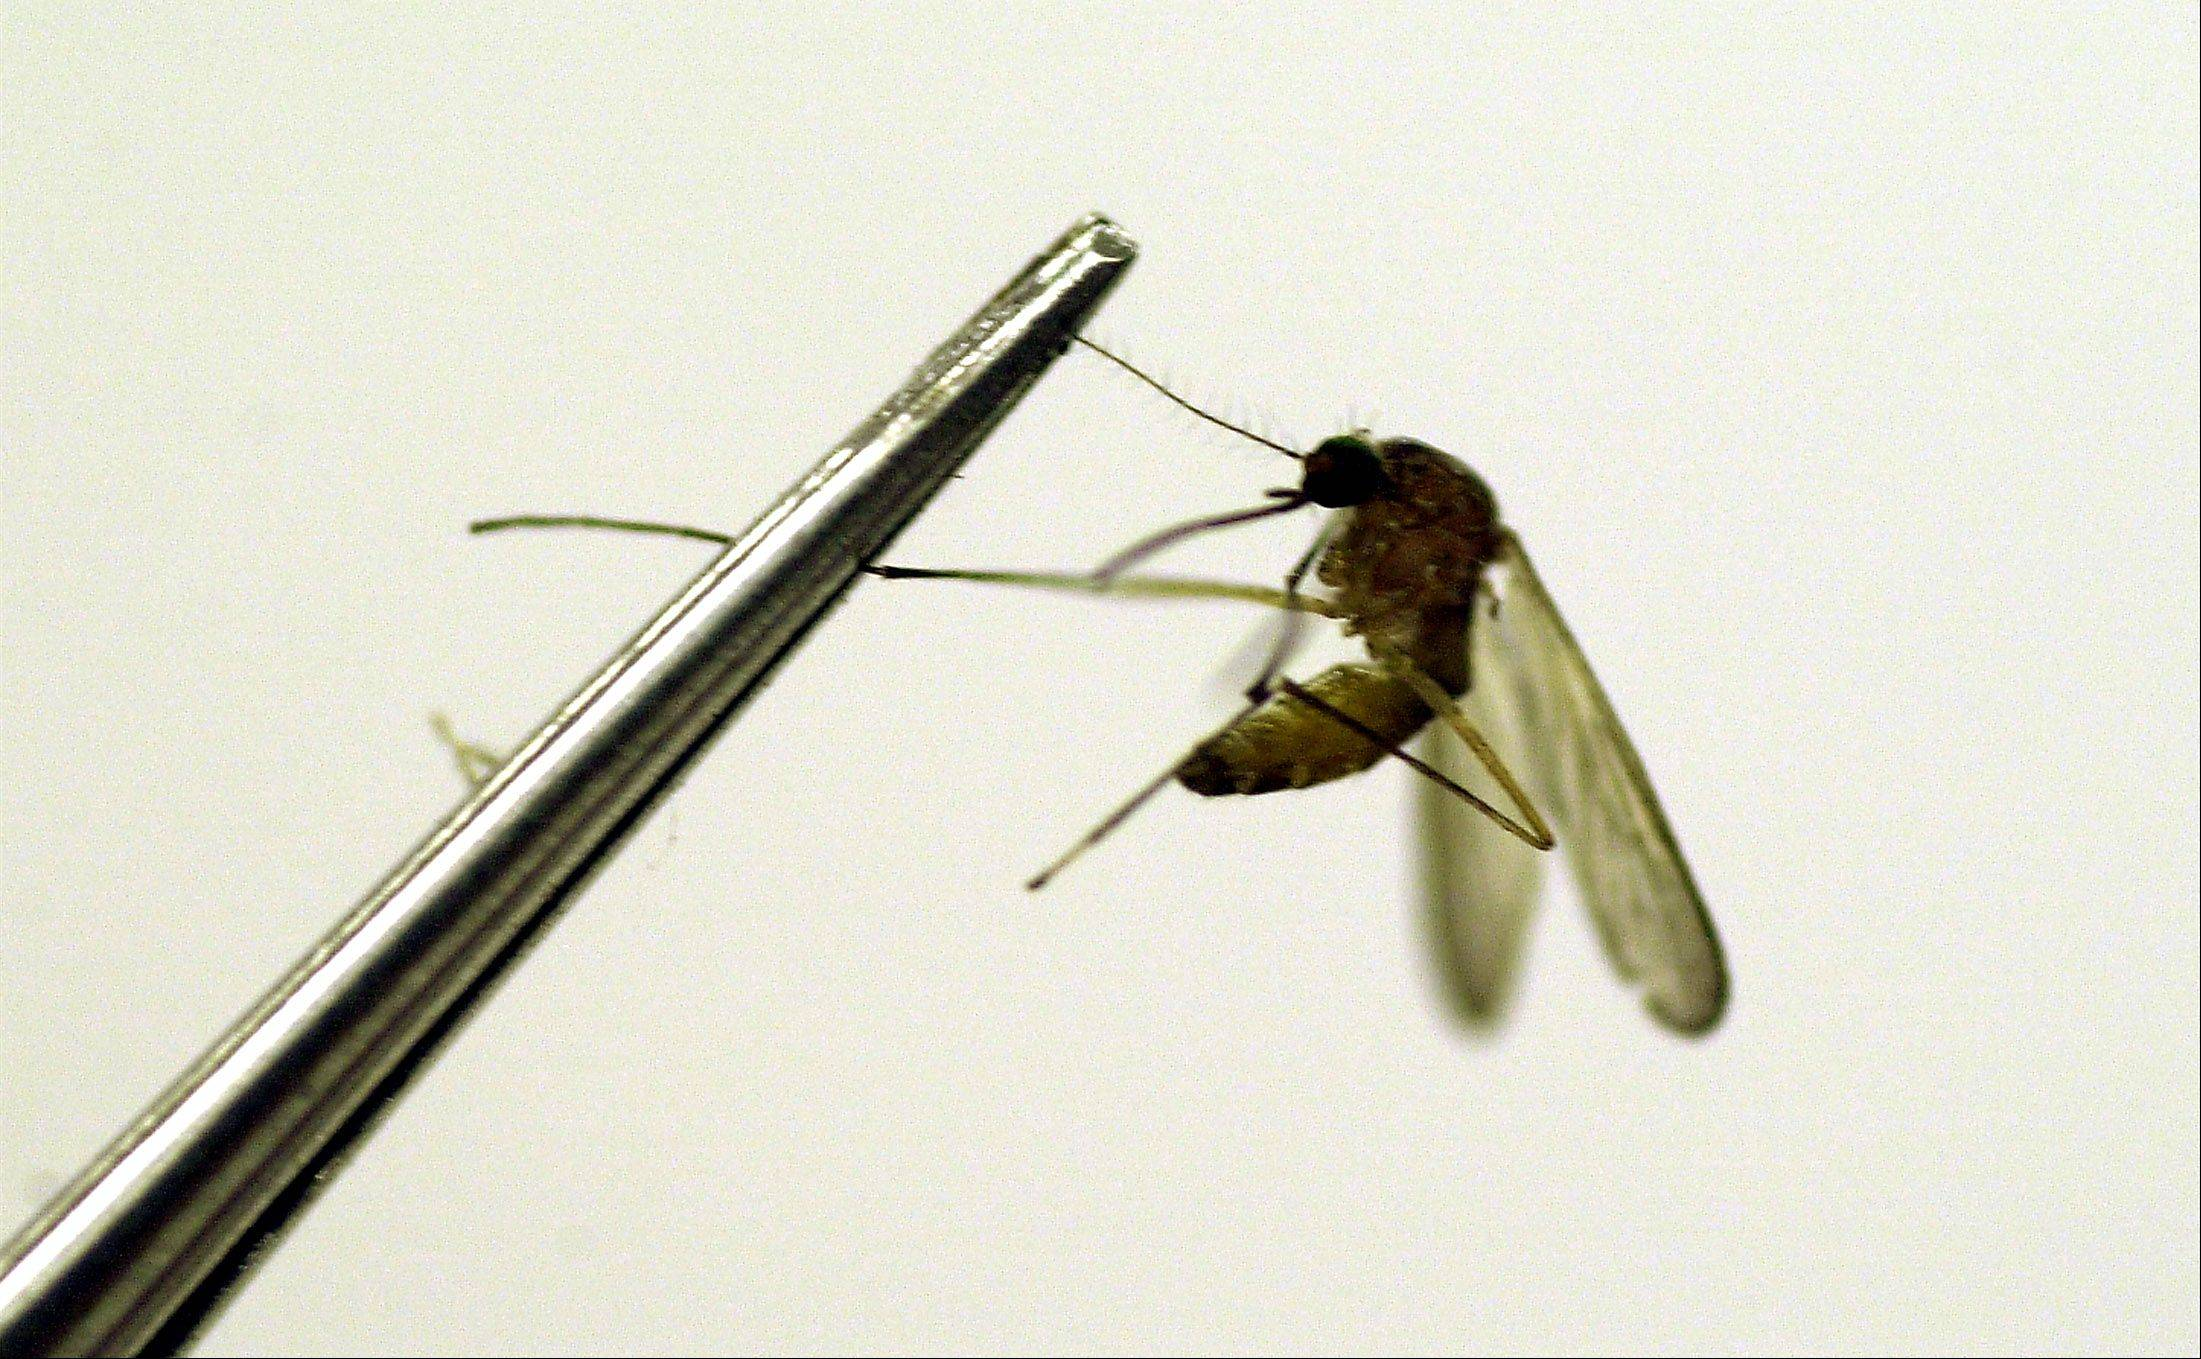 A mosquito is tested for the West Nile virus at a lab.